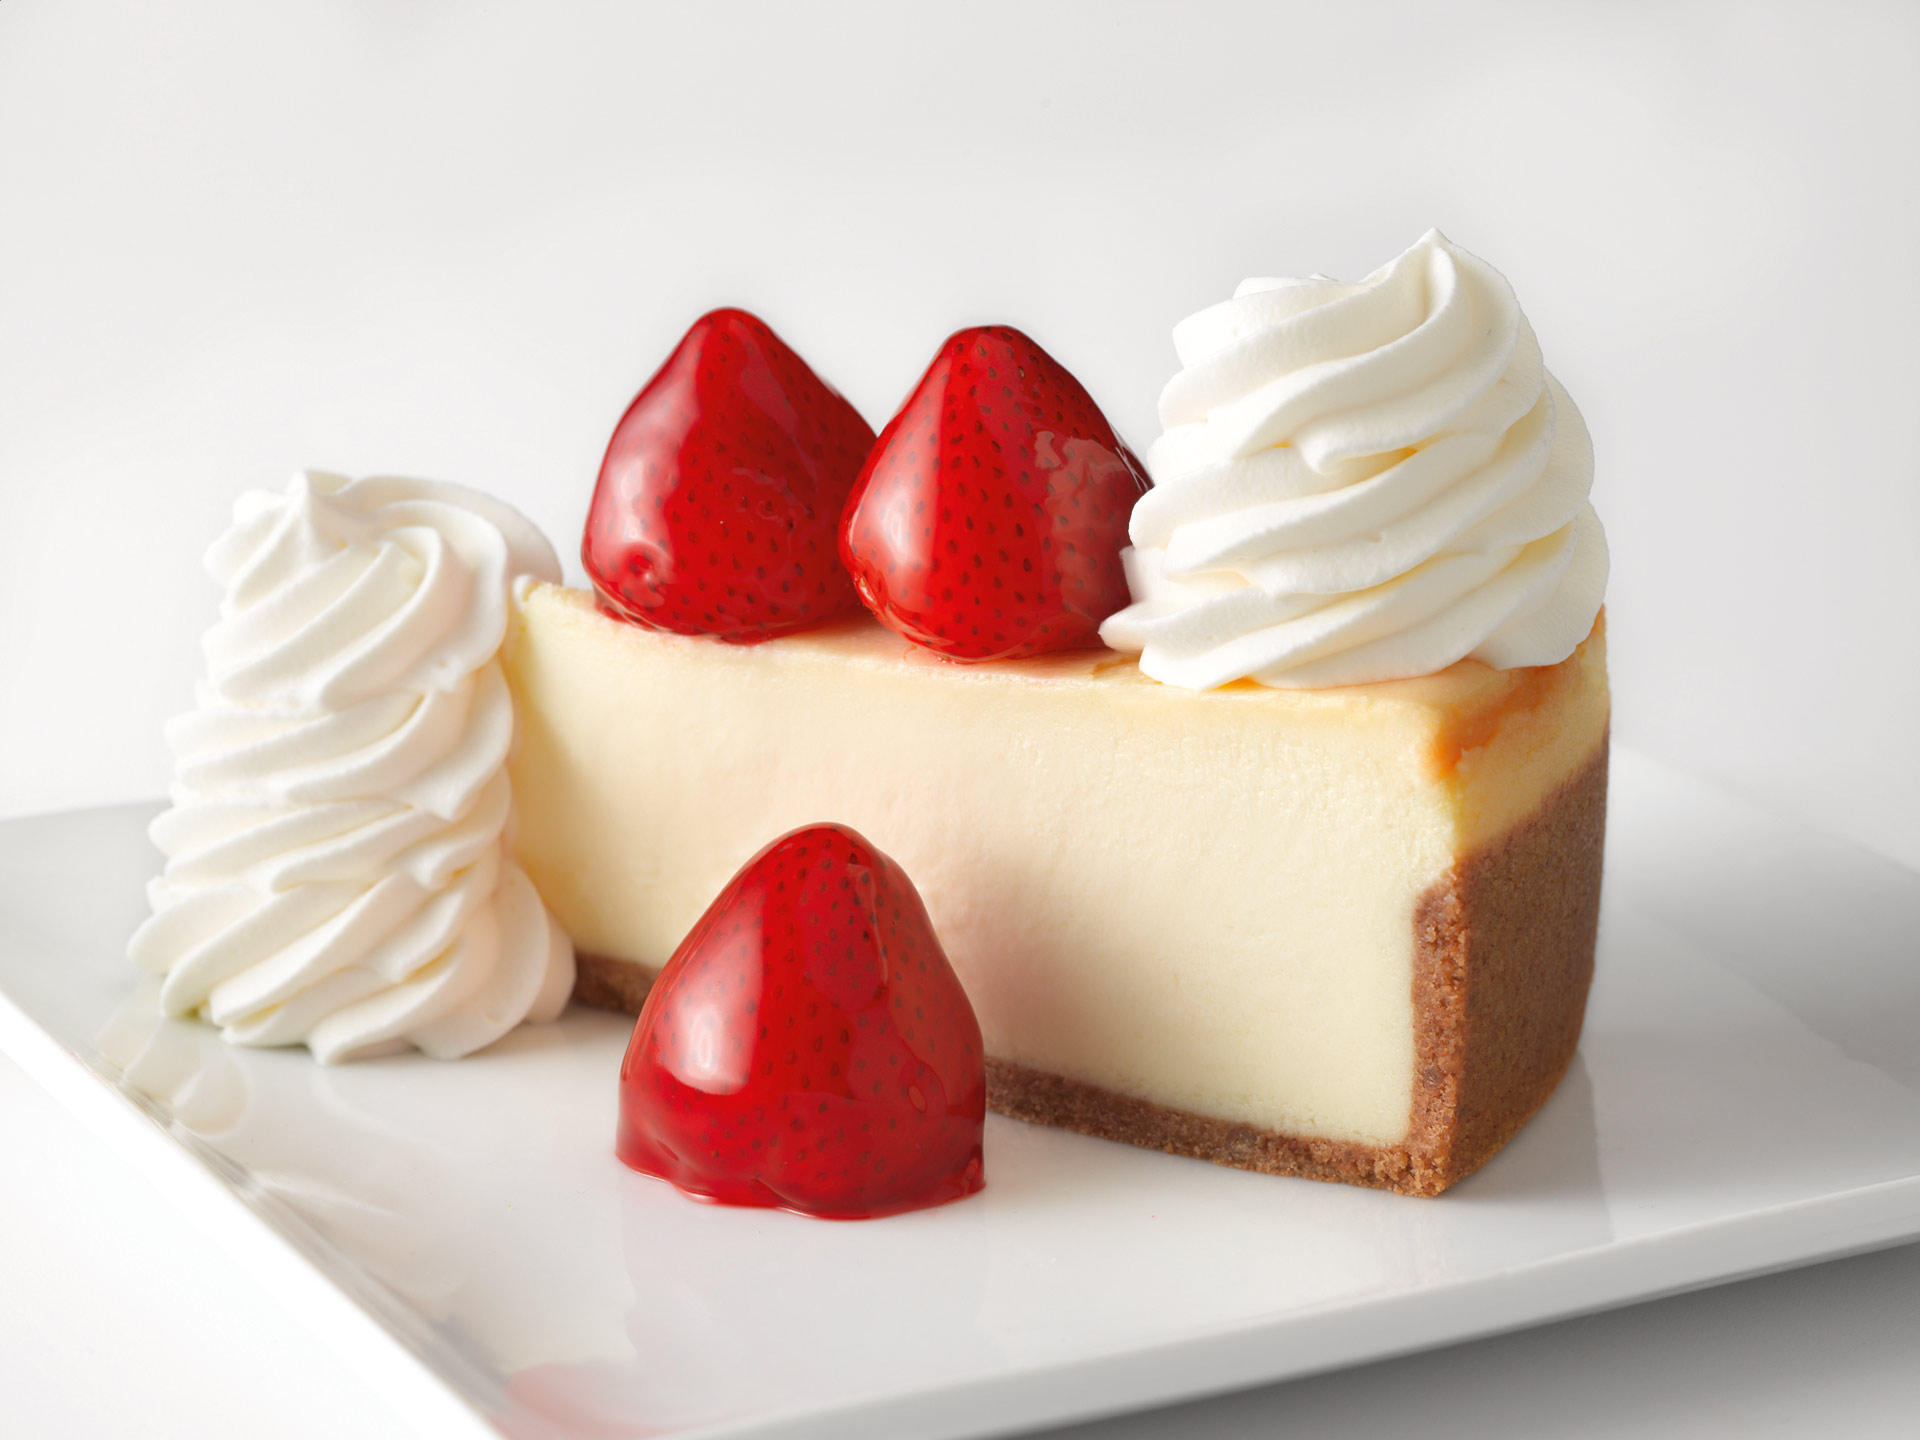 Free 1 slice of cheesecake with $25 giftcard order @ Cheesecake Factory